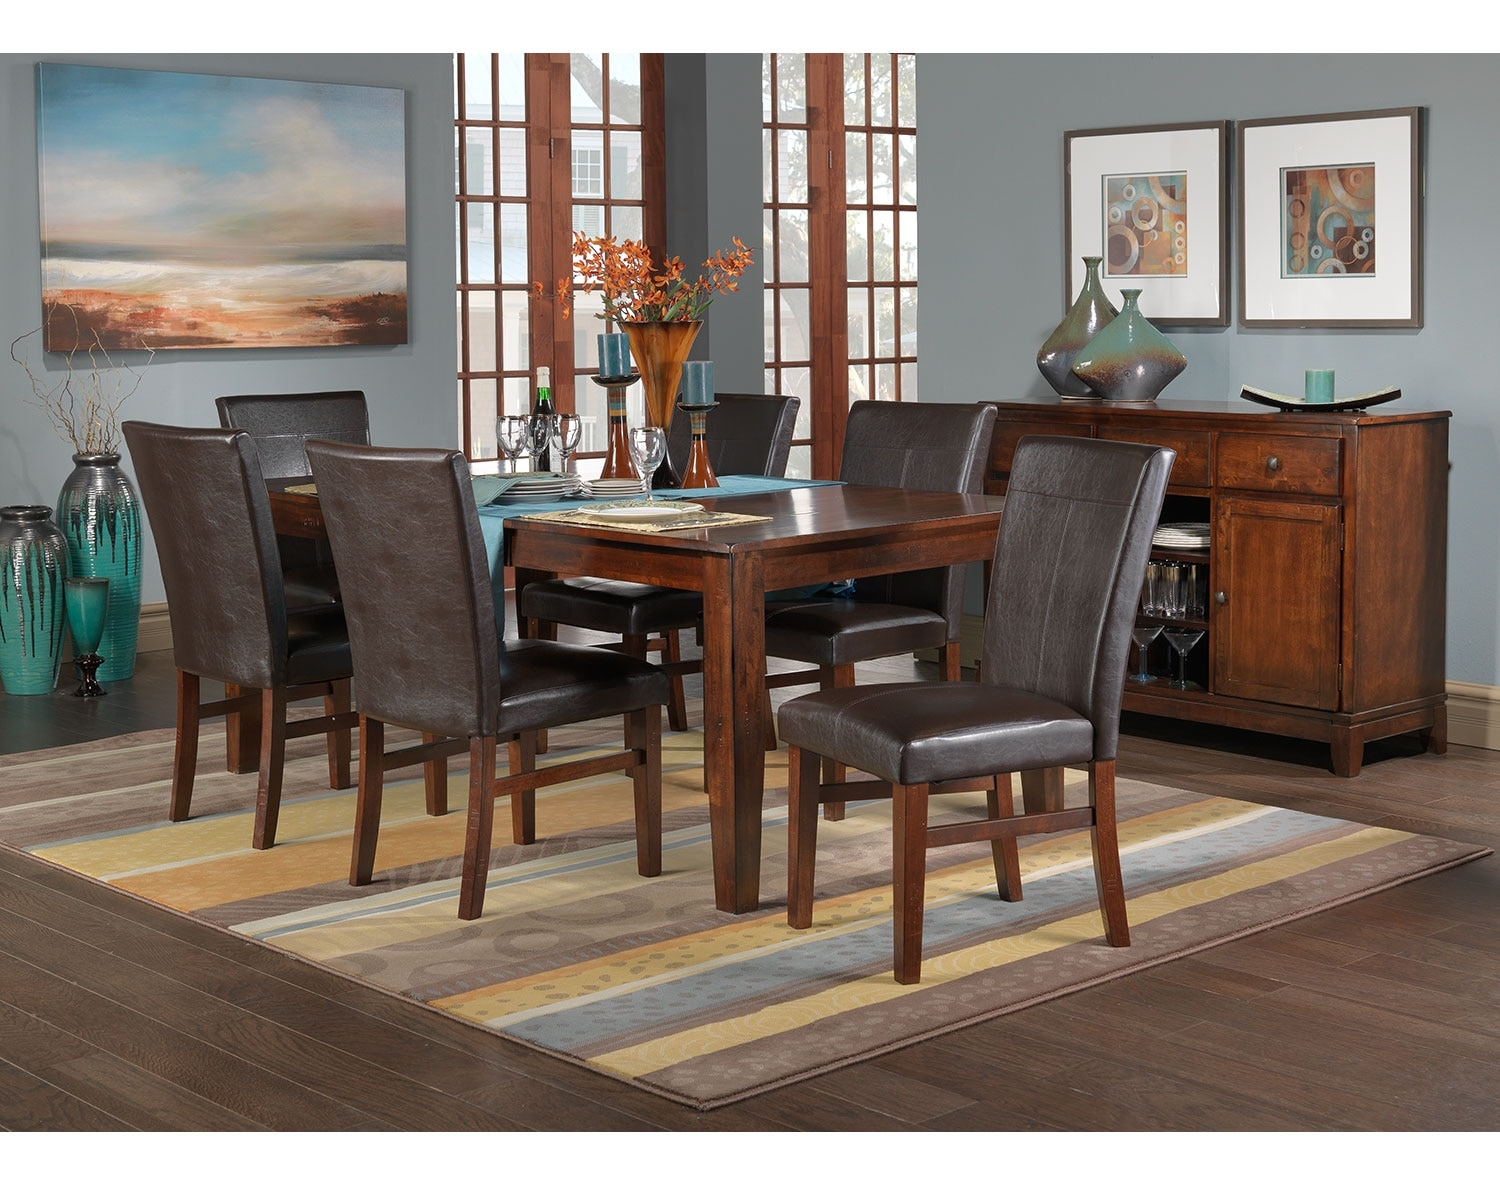 Oak dining room set 28 images oak dining room tables for B m dining room furniture